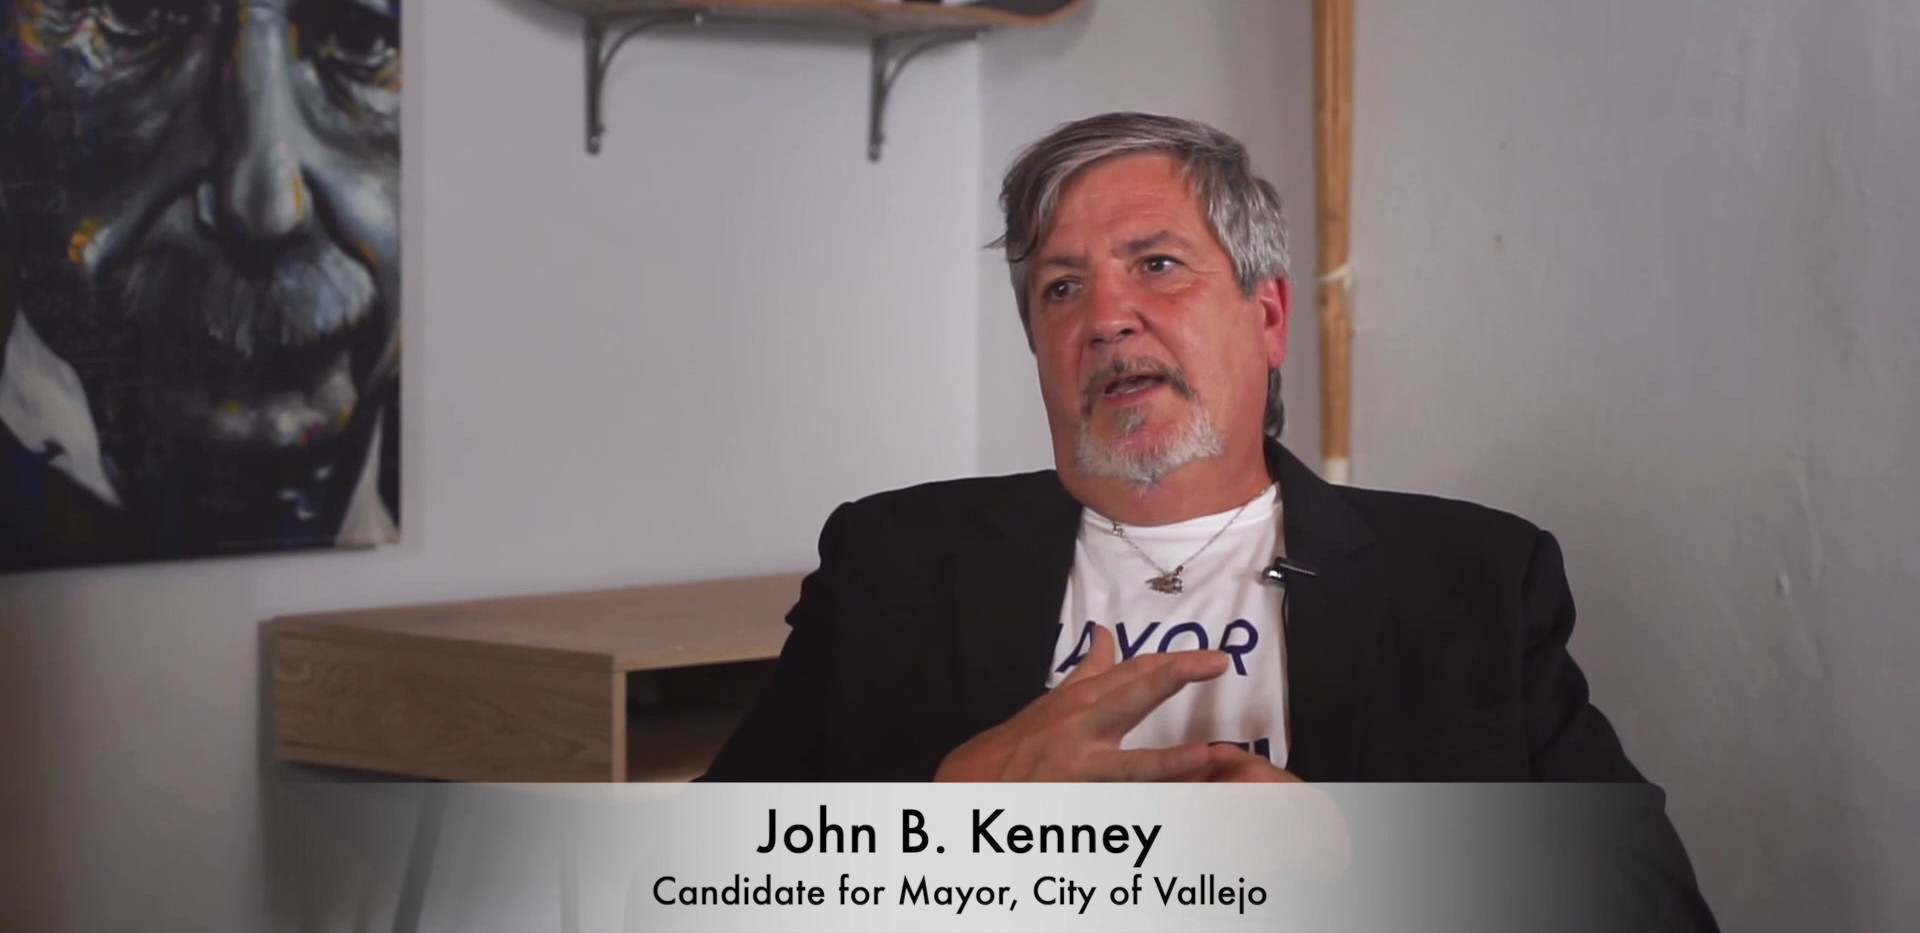 John B Kenney - Meet the Candidates, Vallejo